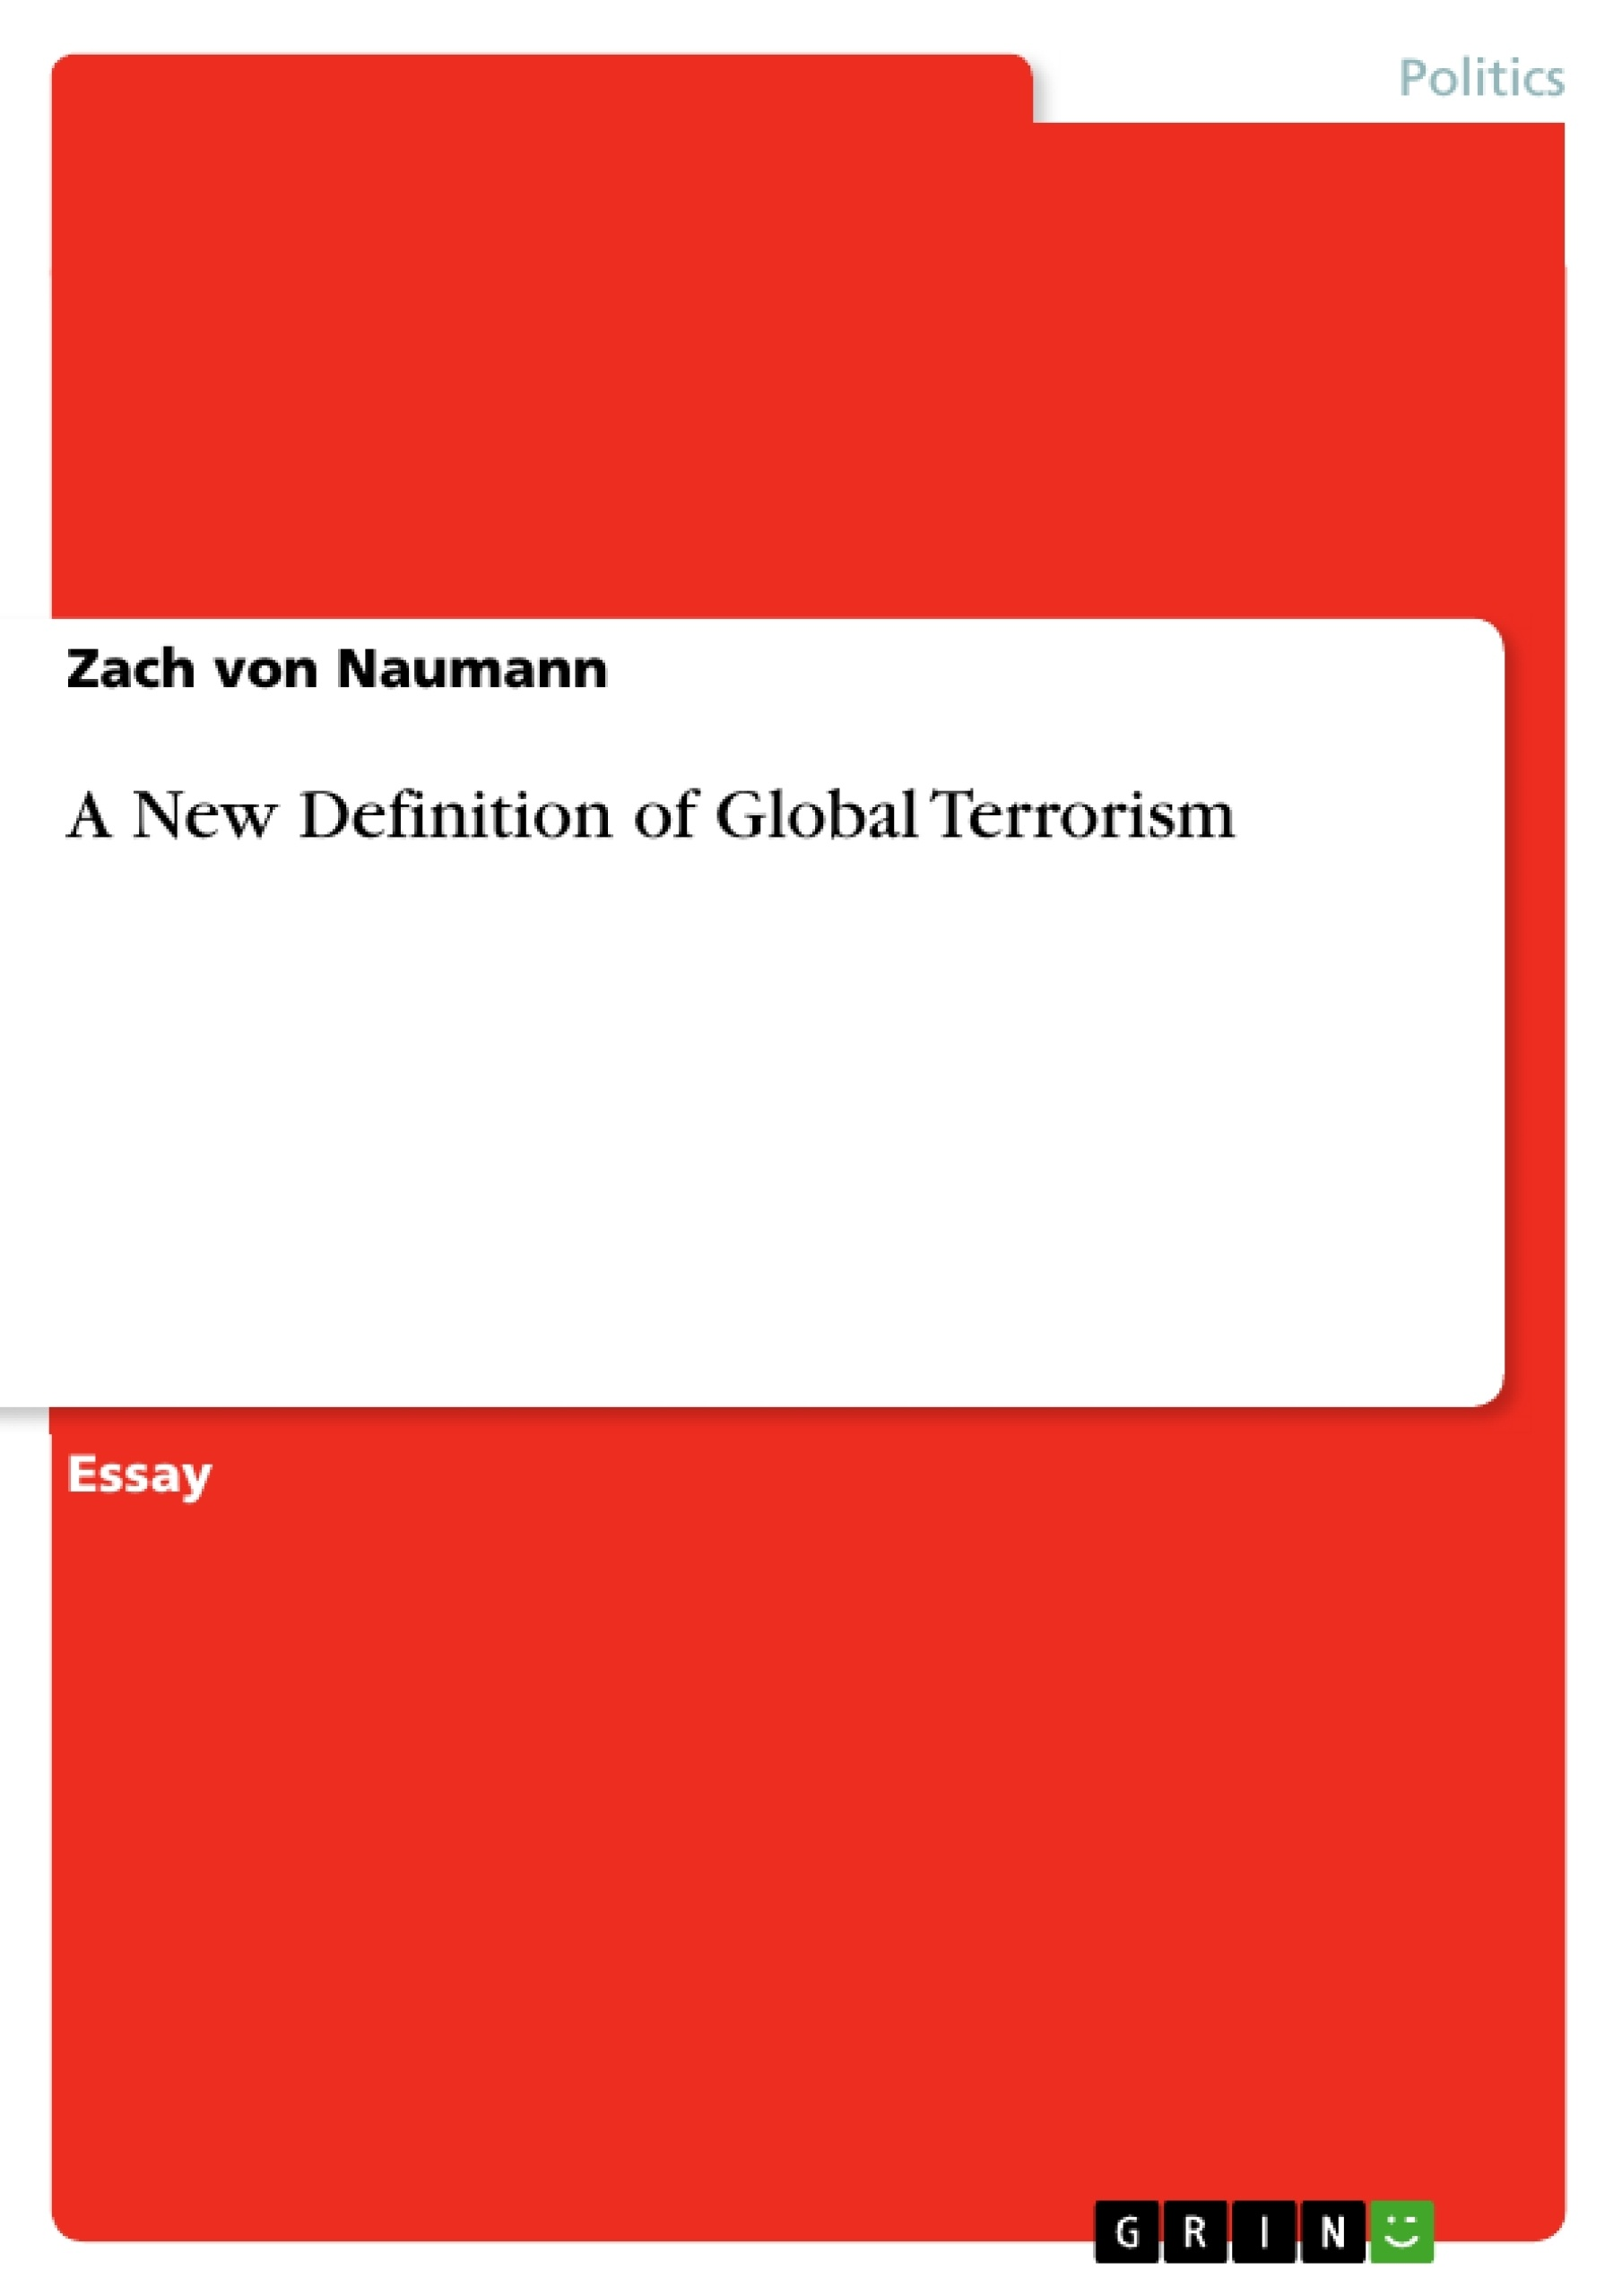 Title: A New Definition of Global Terrorism